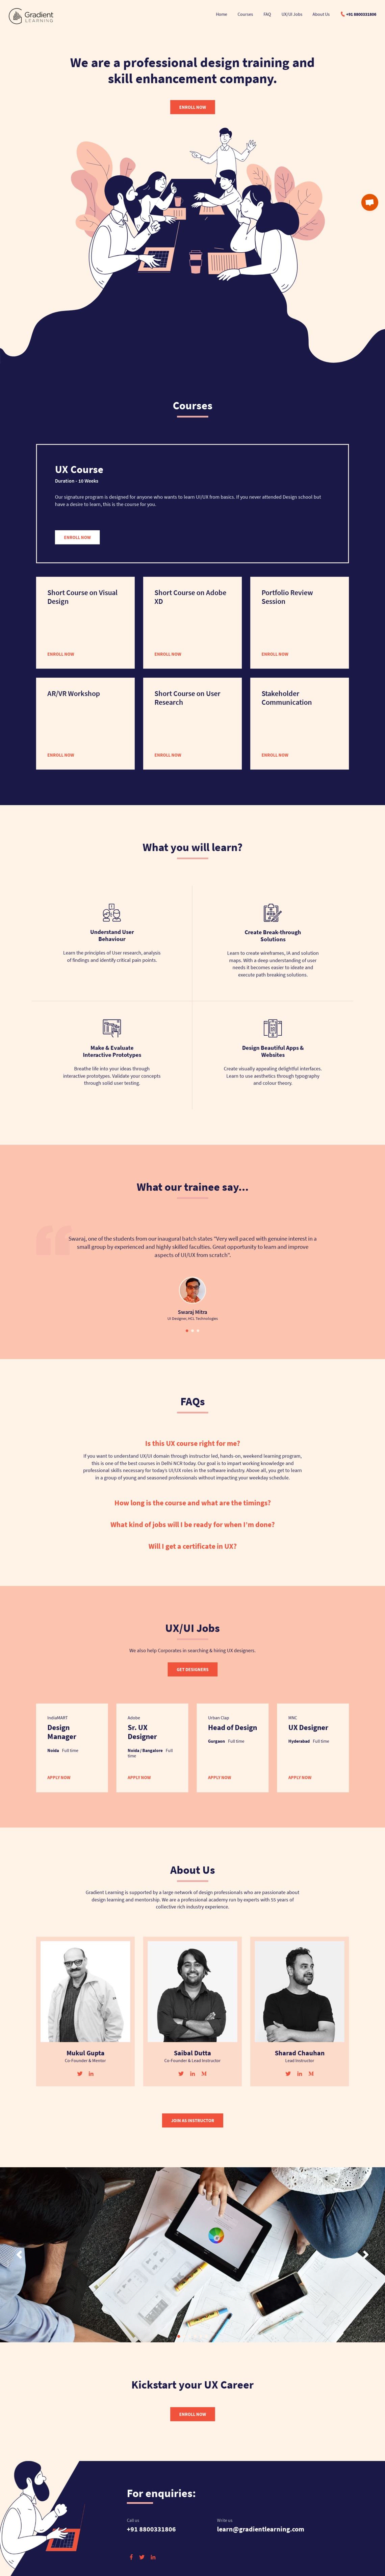 Gradient Learning-UI/UX design training and skill enhancement academy